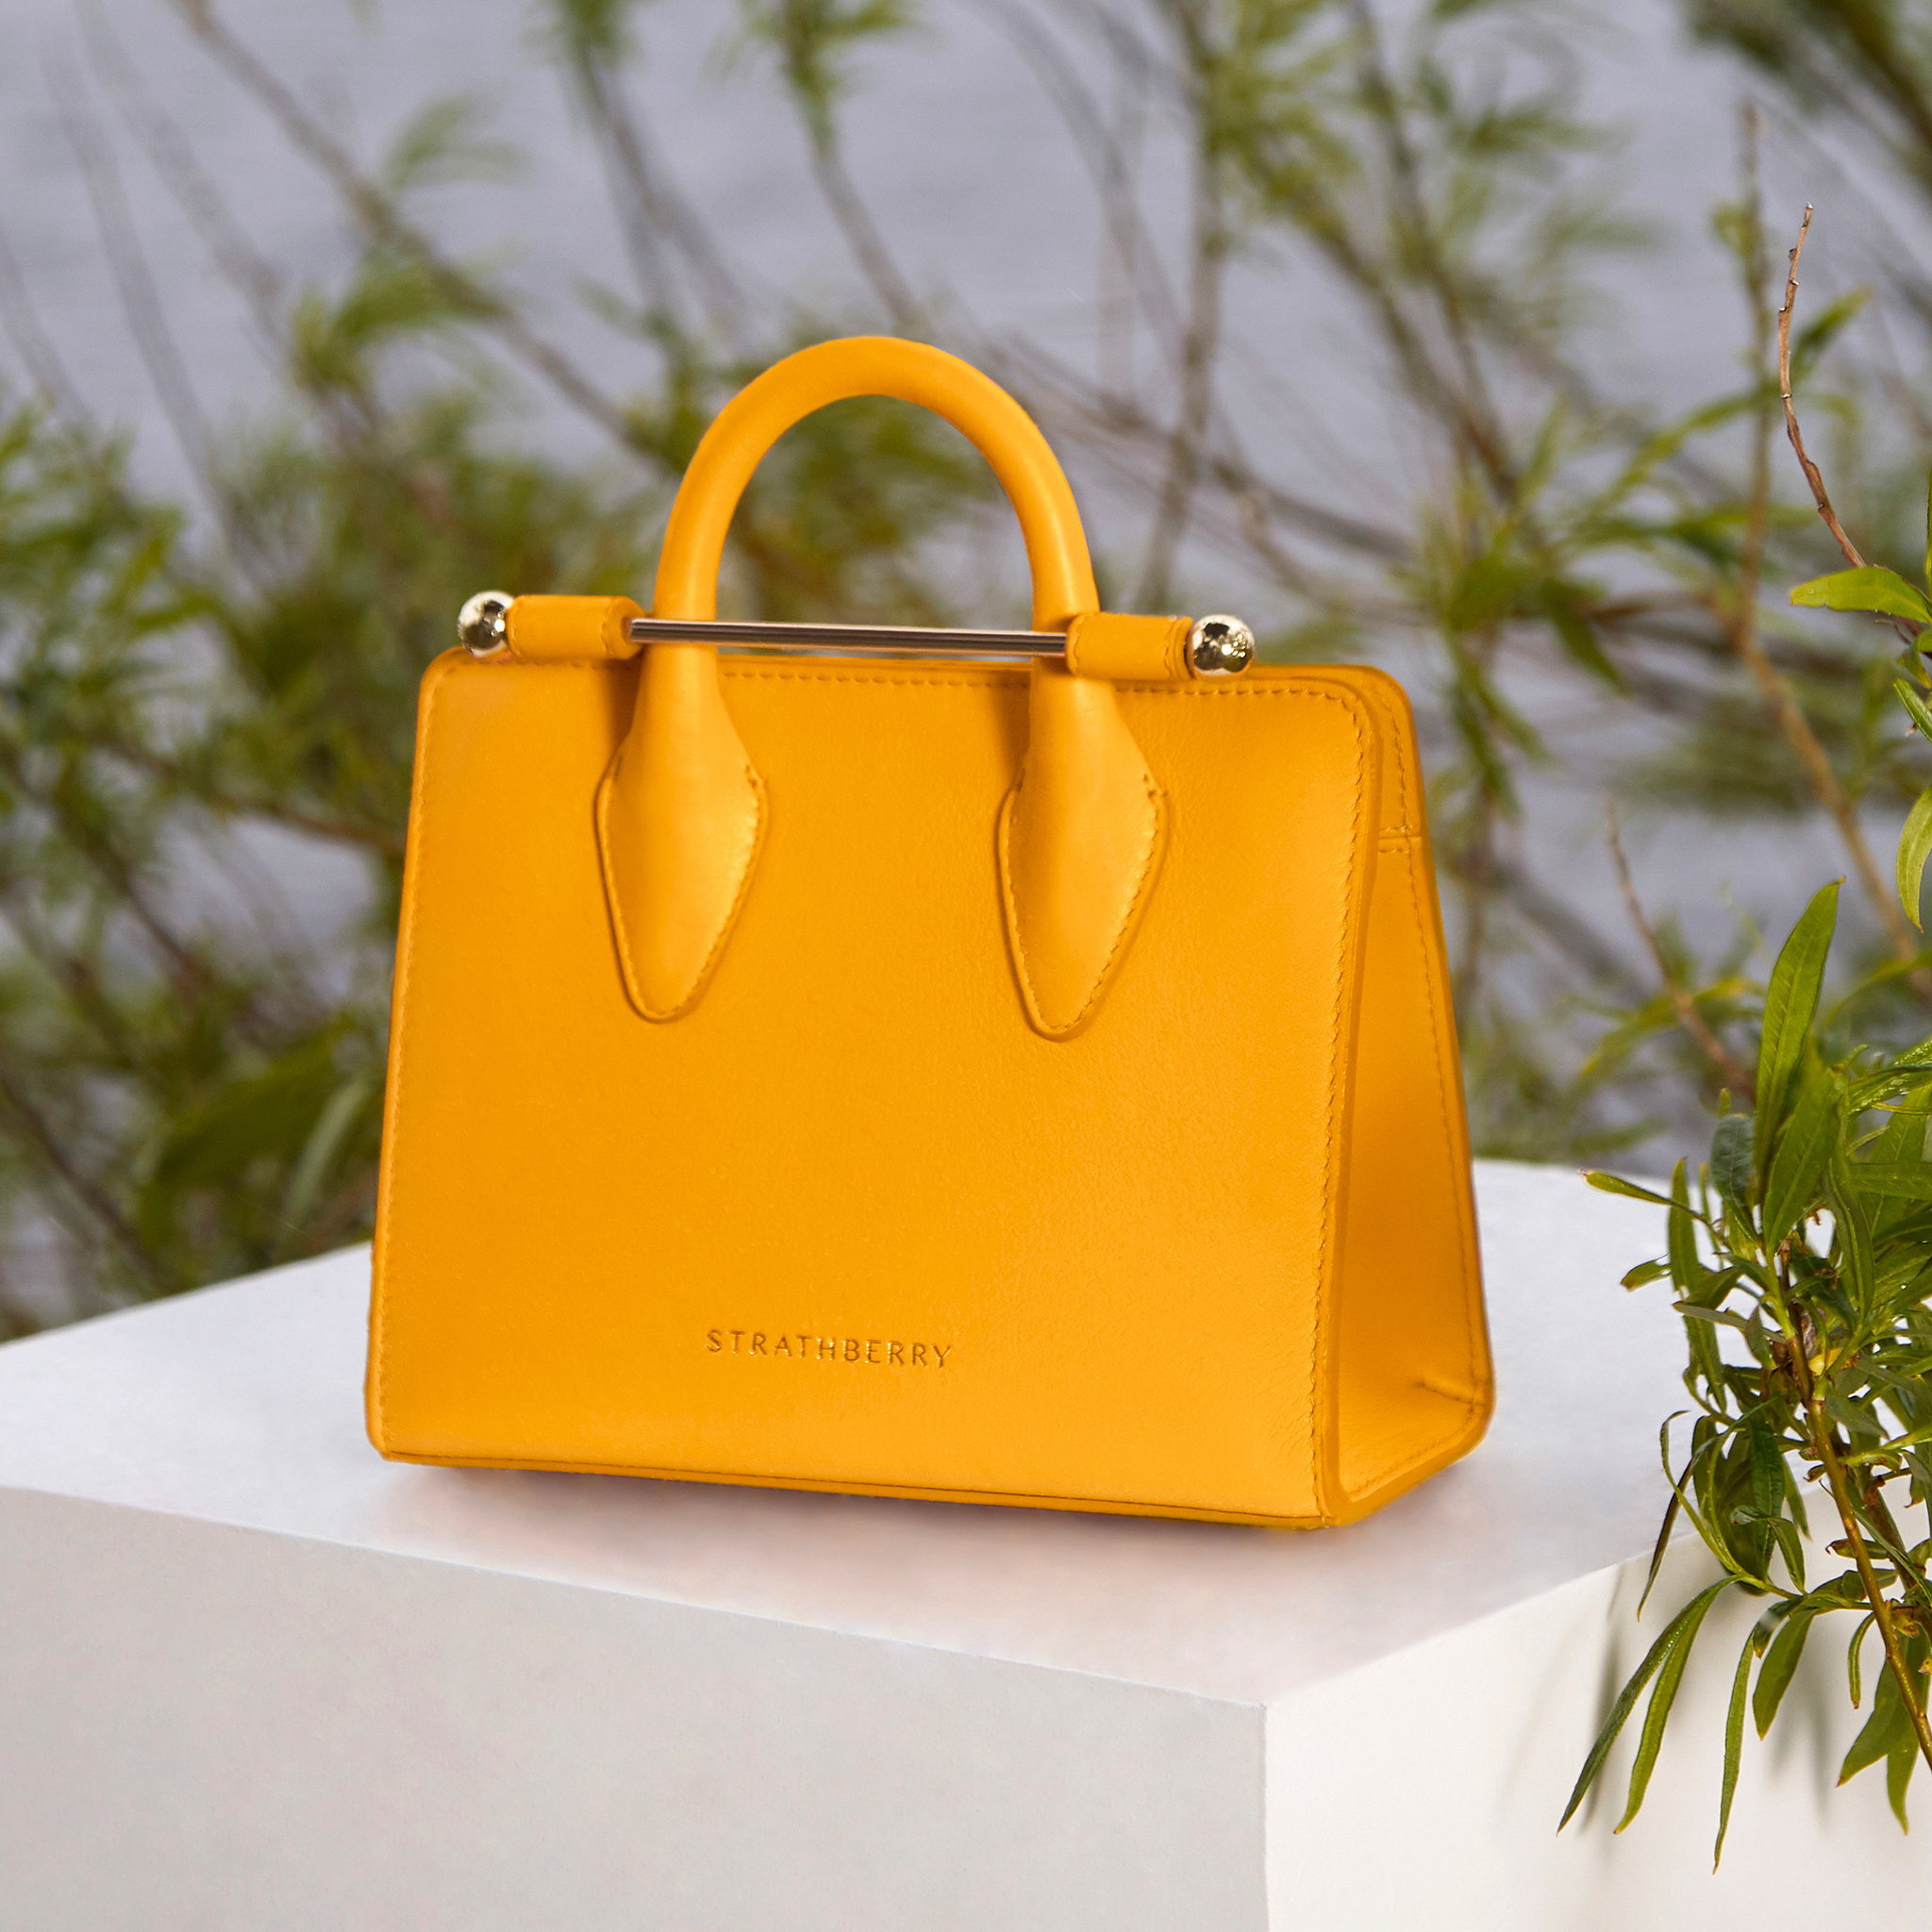 The Strathberry Nano Tote – Blossom Yellow